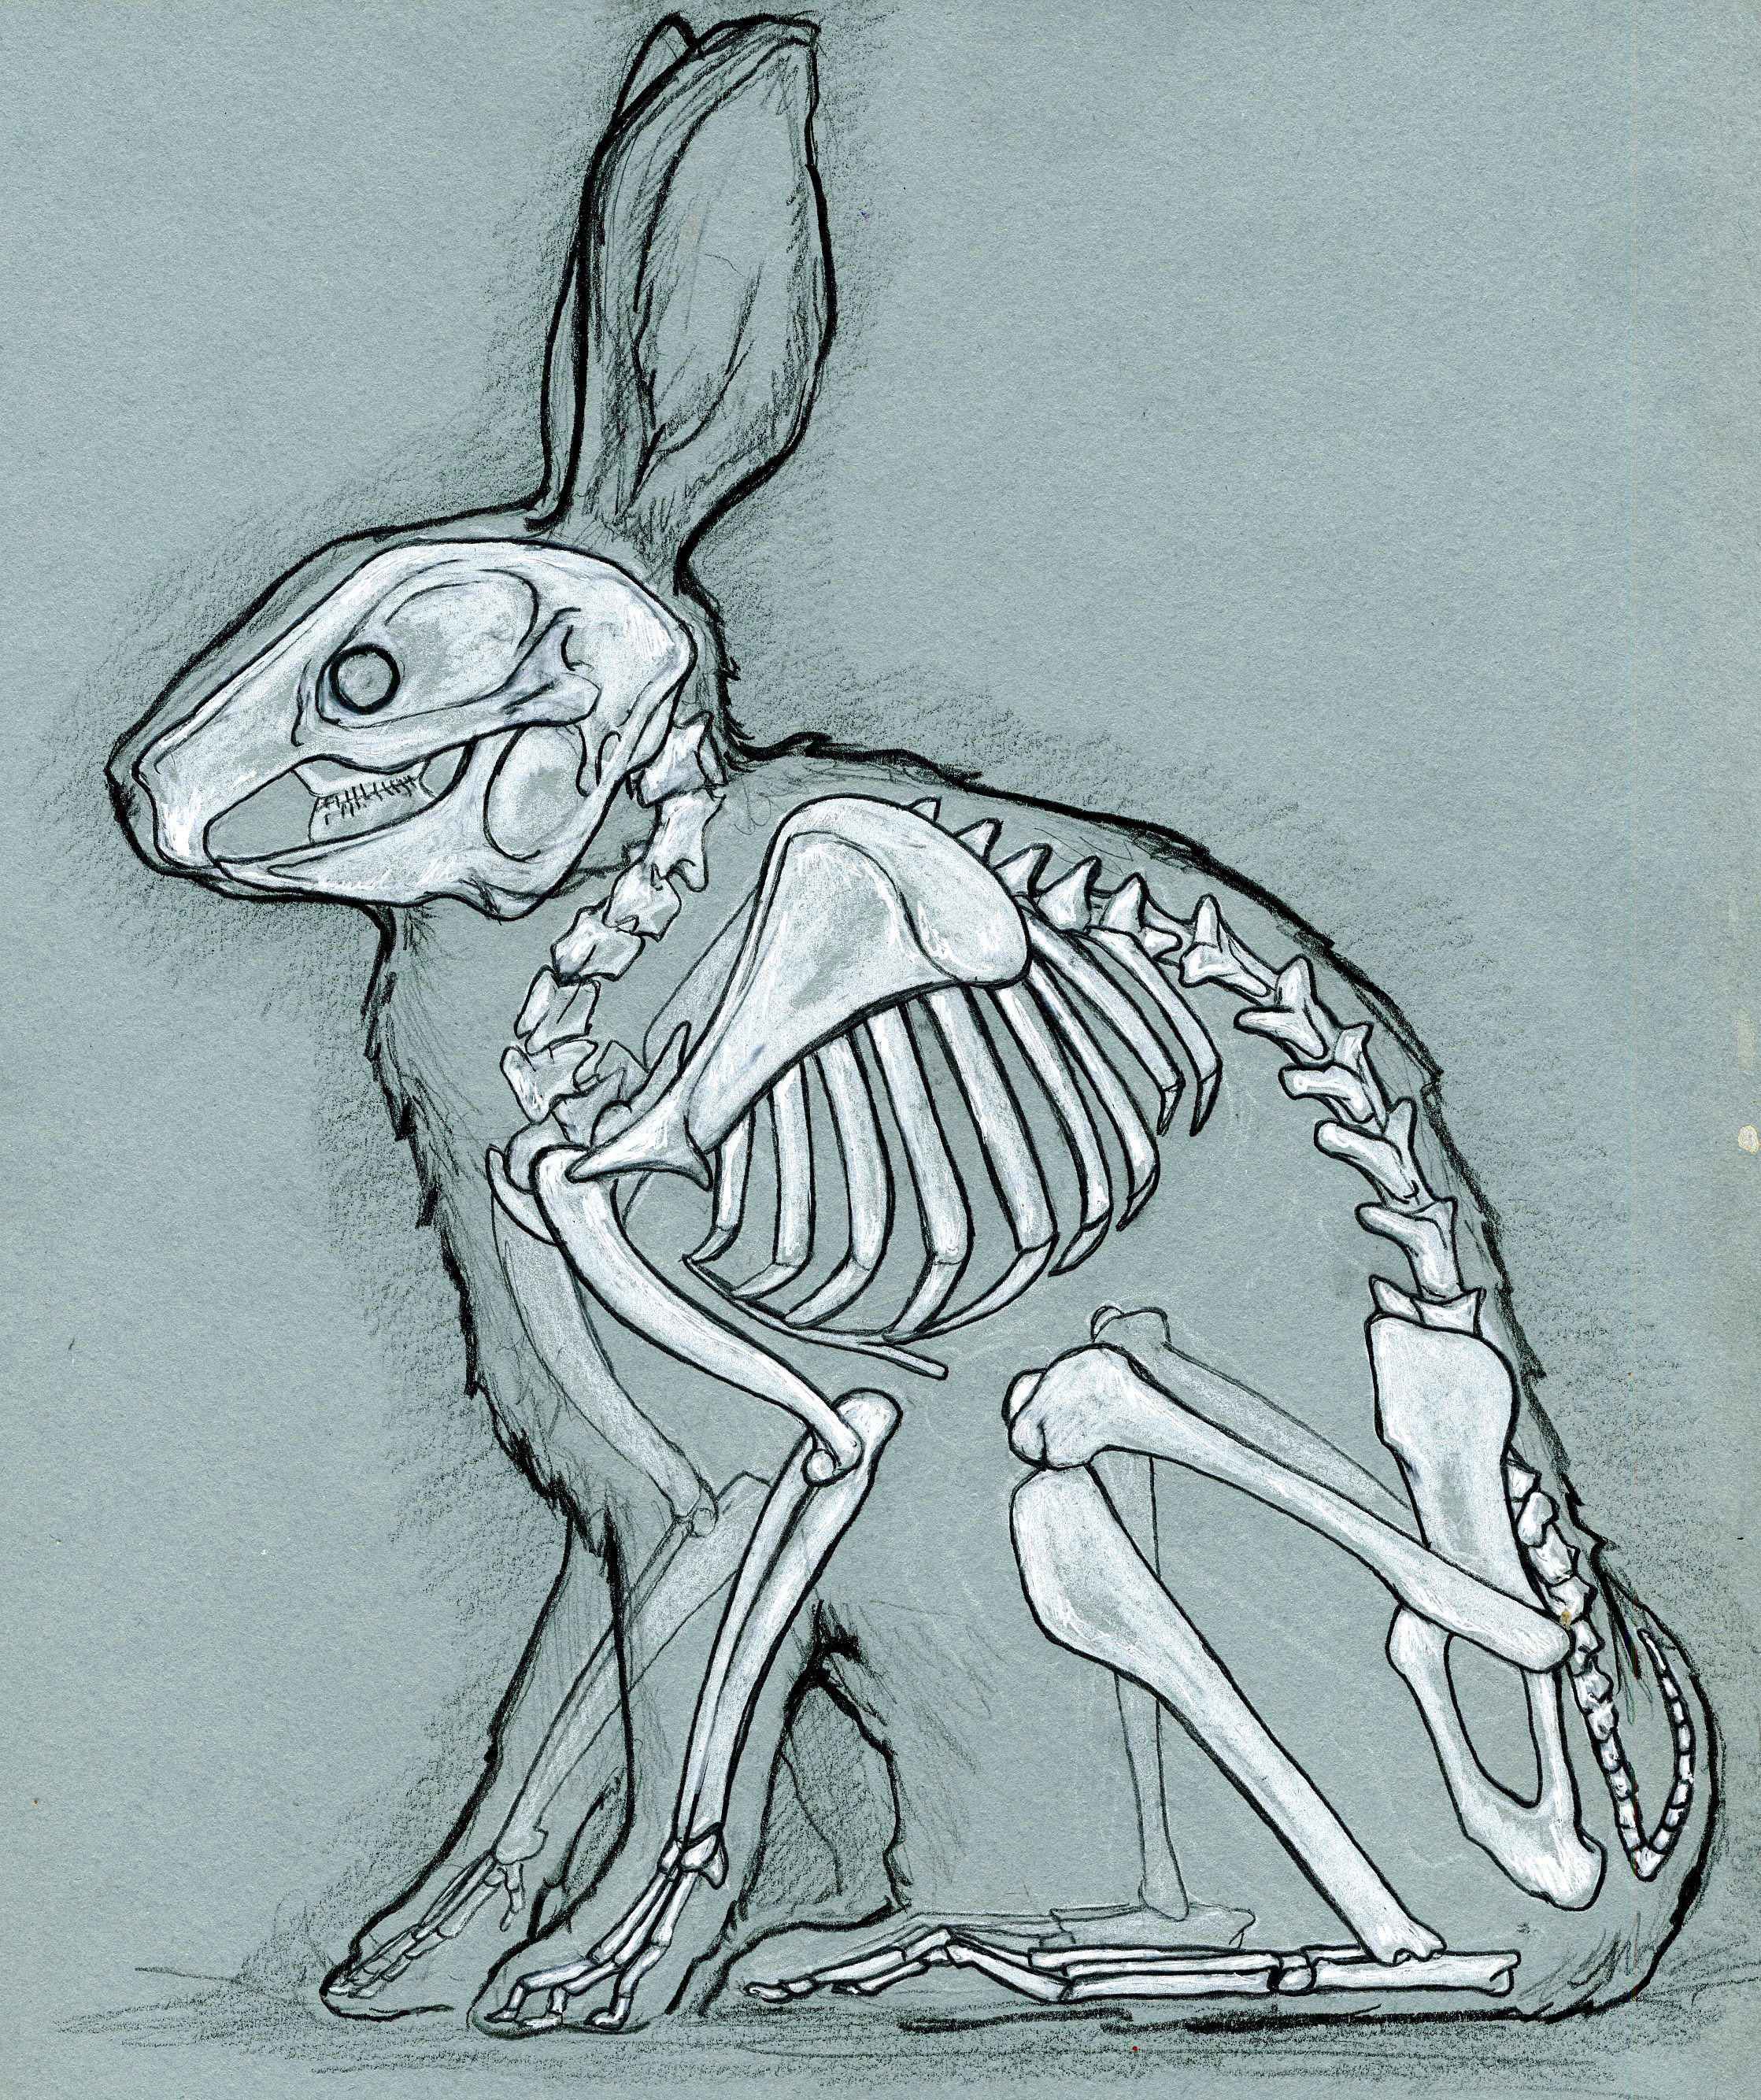 Rabbit Heart Diagram 98 Civic Fuse Box Skeleton Of A Bunny Life In Death